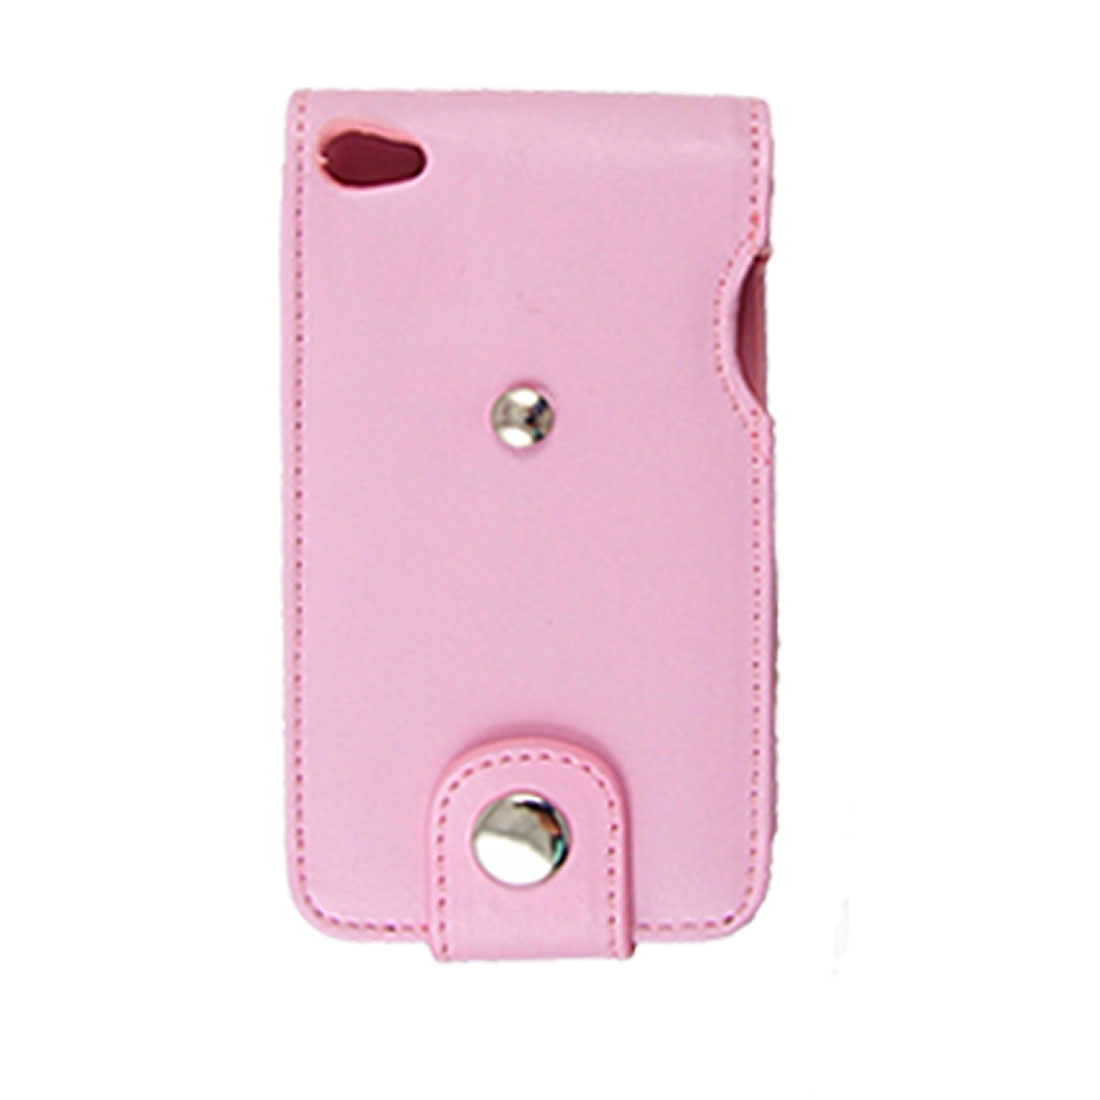 Pink Faux Leather Pouch w Holder Clip for iPod Touch 4G